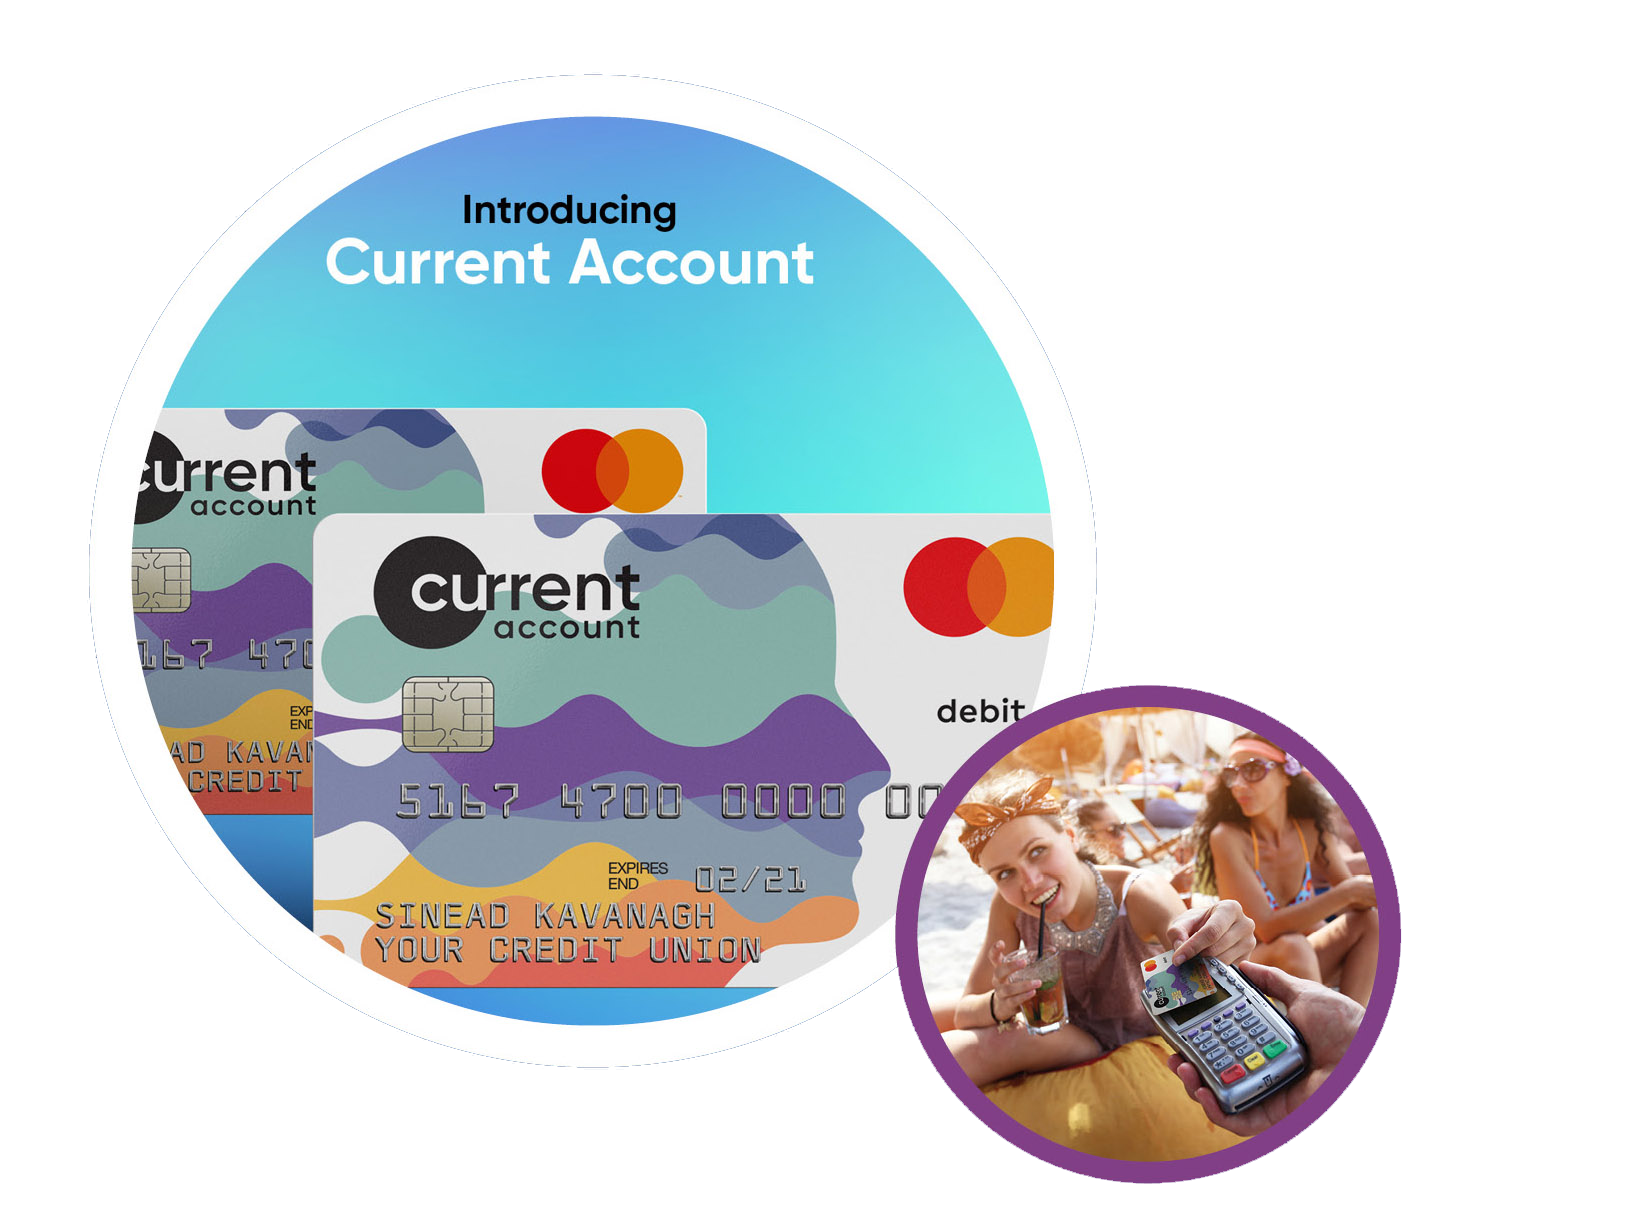 Current Account website header image circles (trans background)